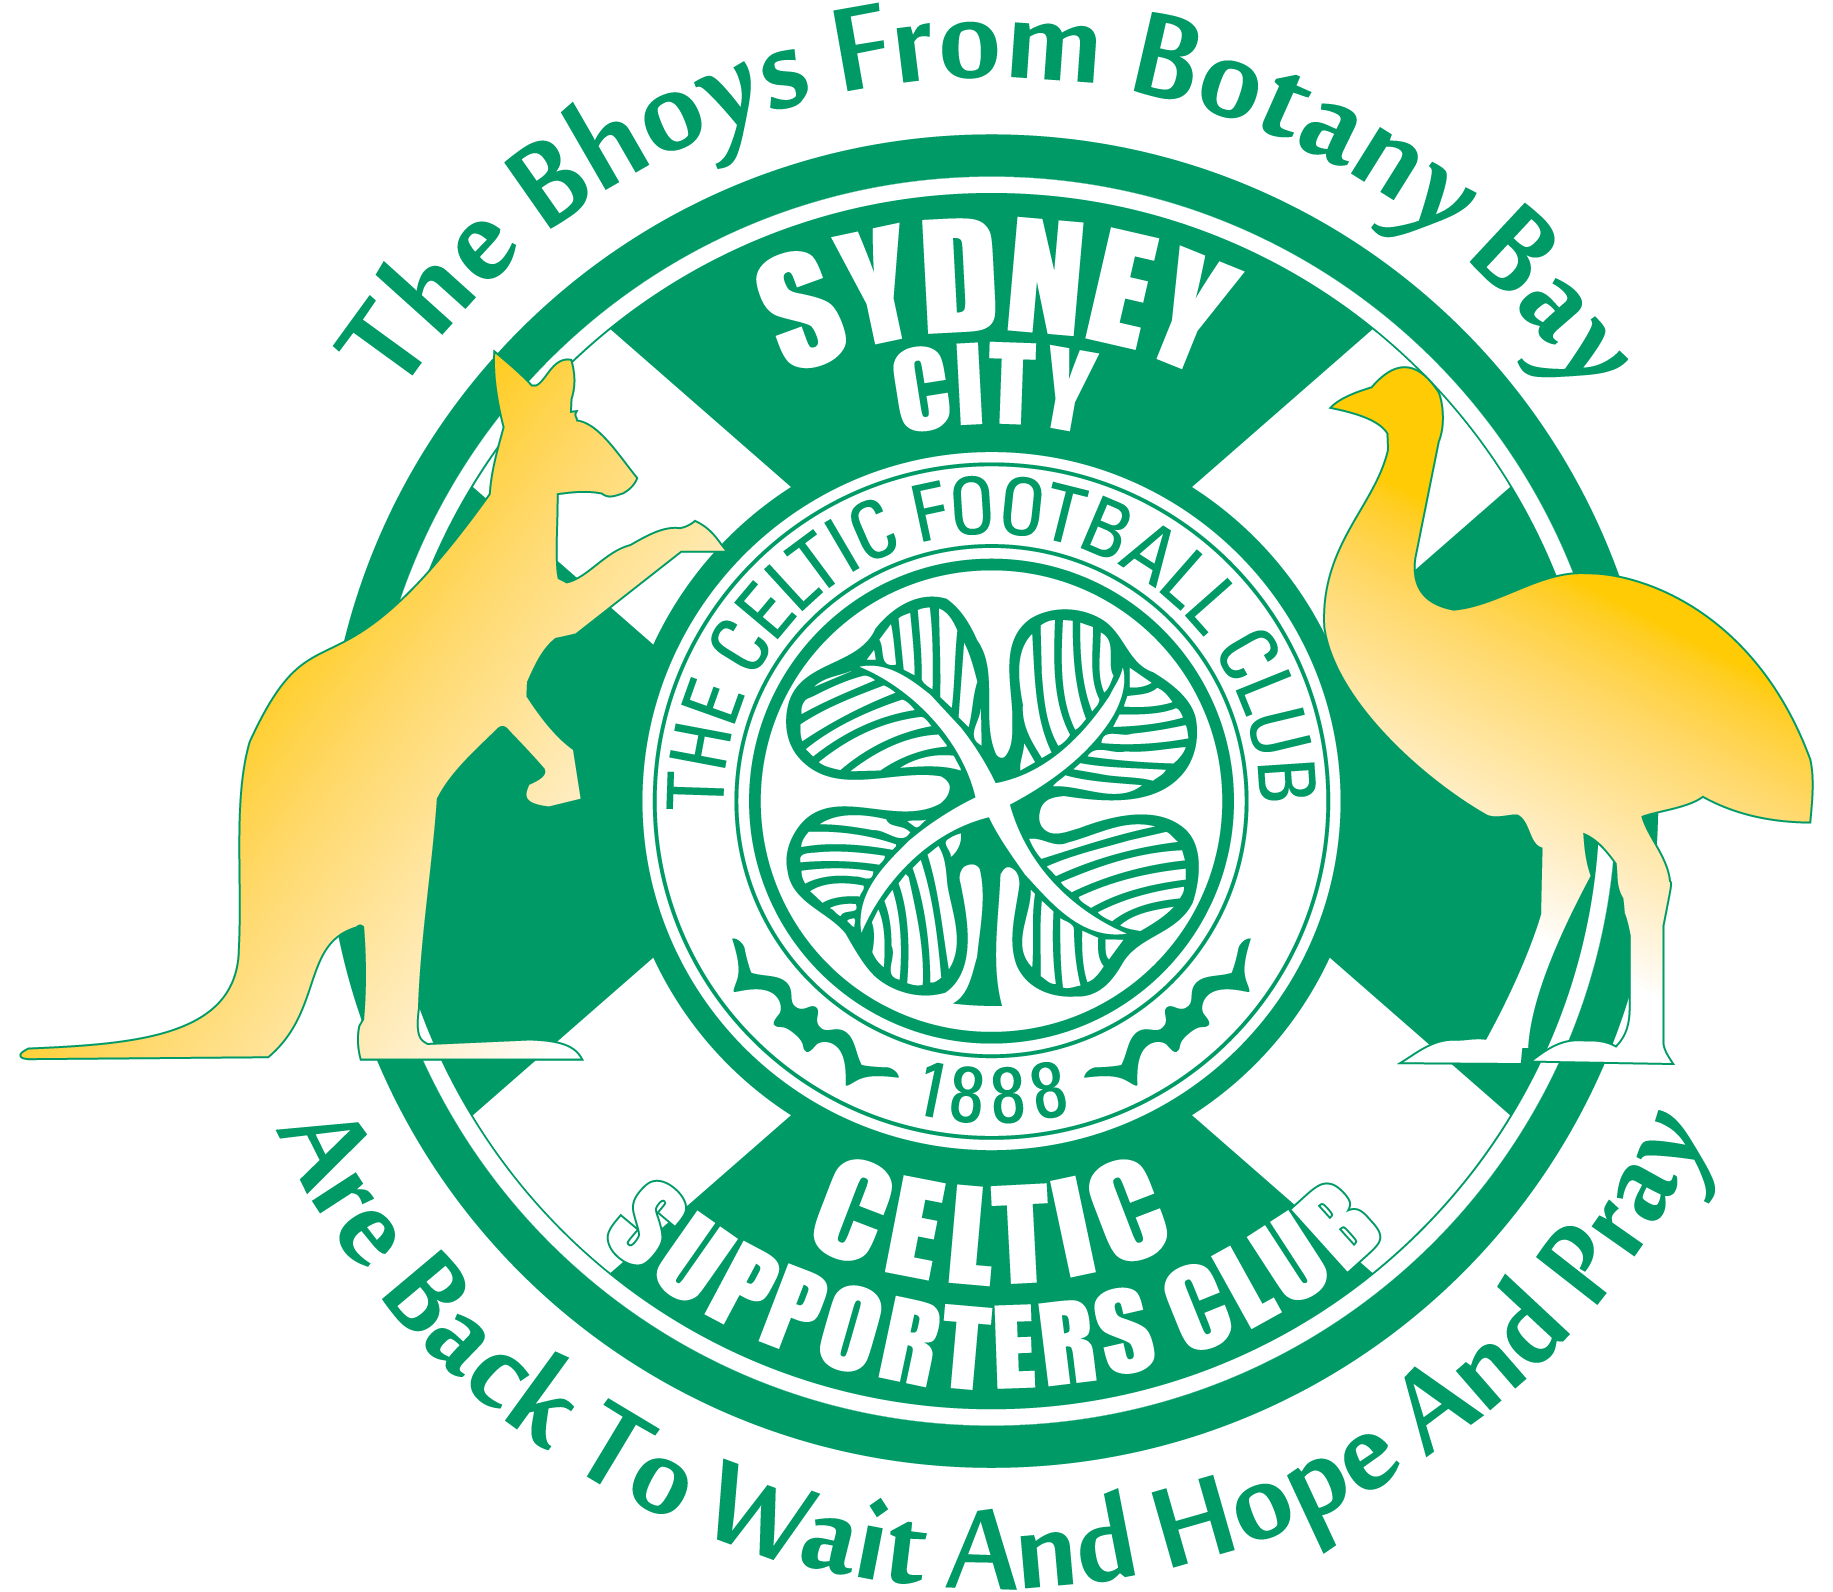 Sydney city Celtic supporters club